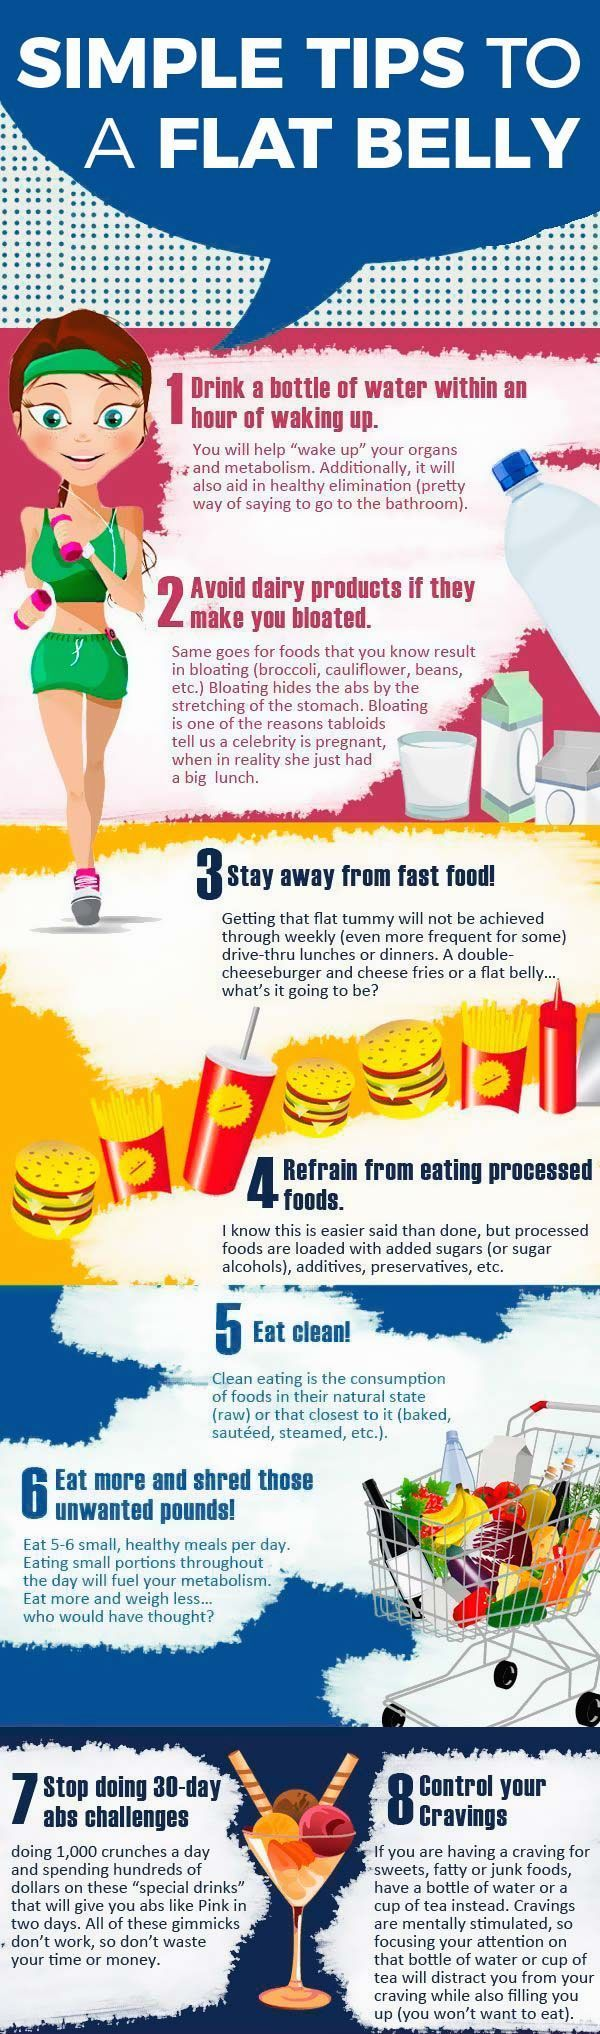 Simple tips to a flat belly